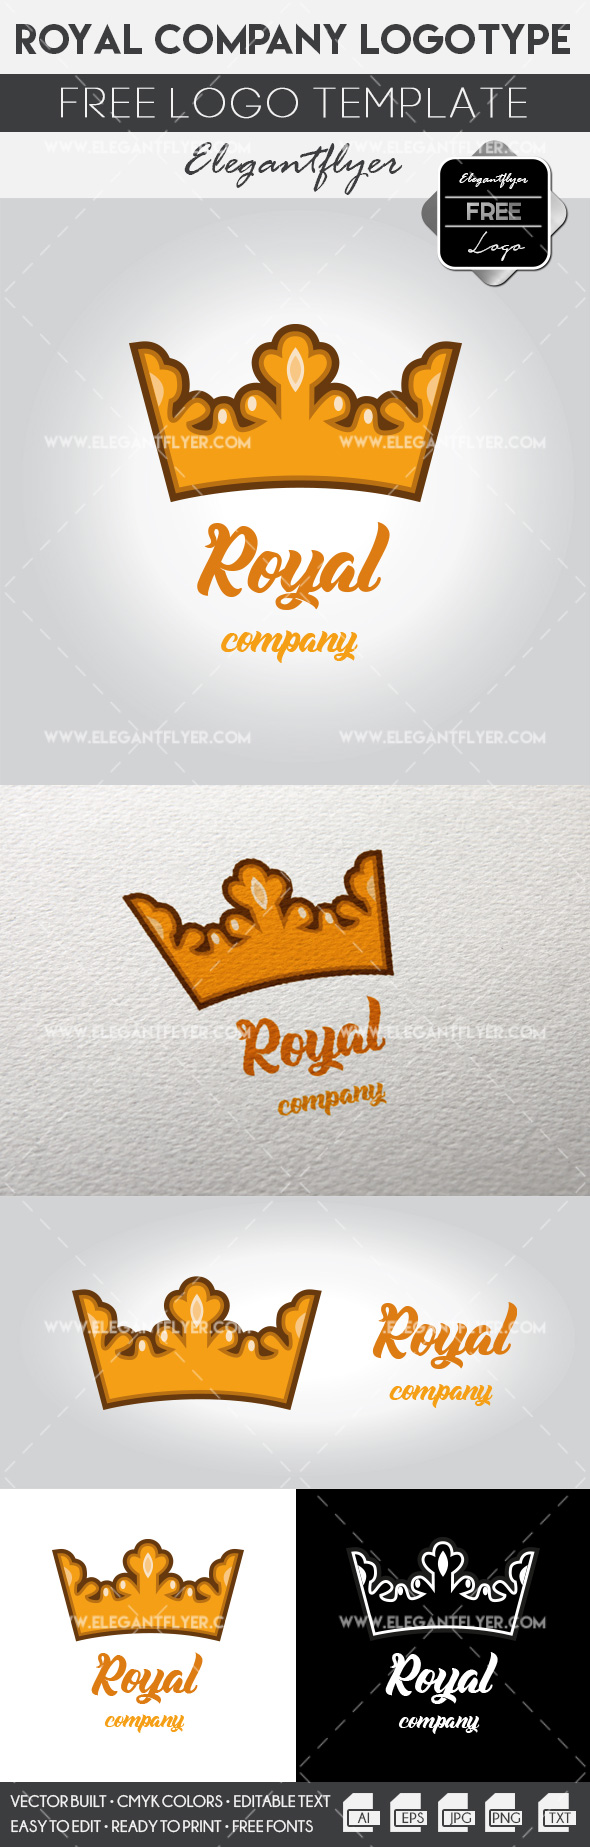 Royal company – Free Logo Template